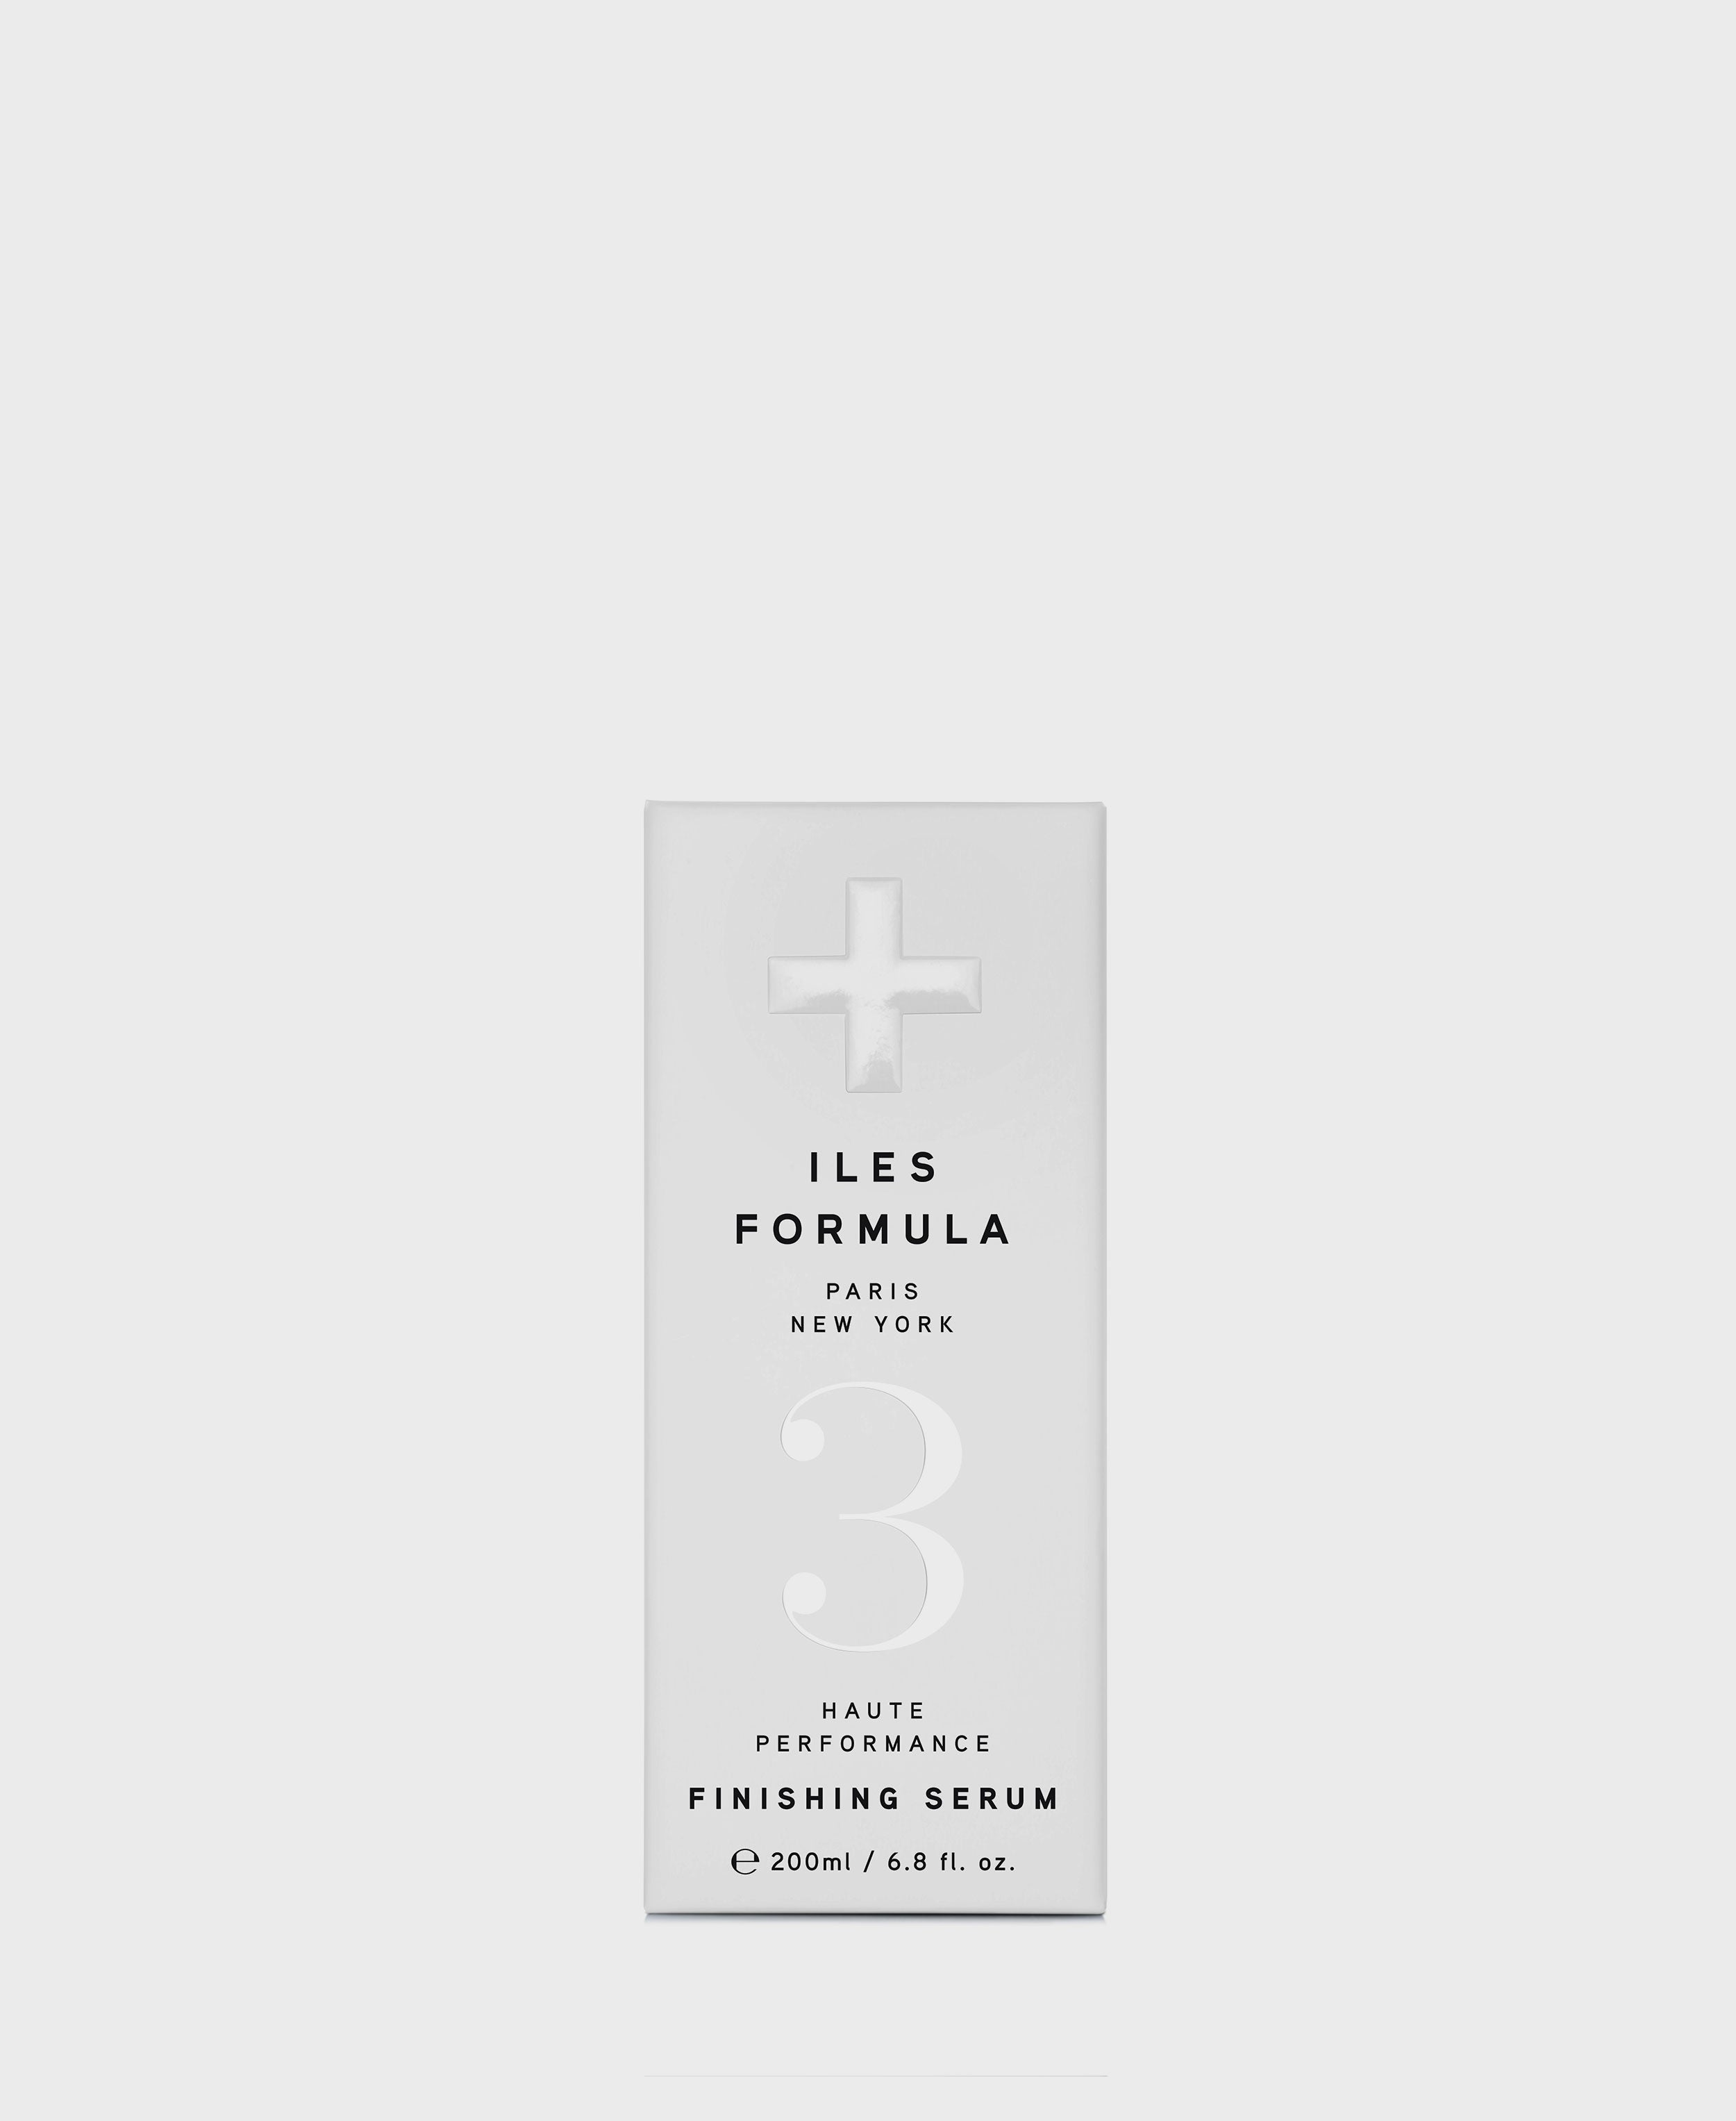 ILES FORMULA FINISHING SERUM